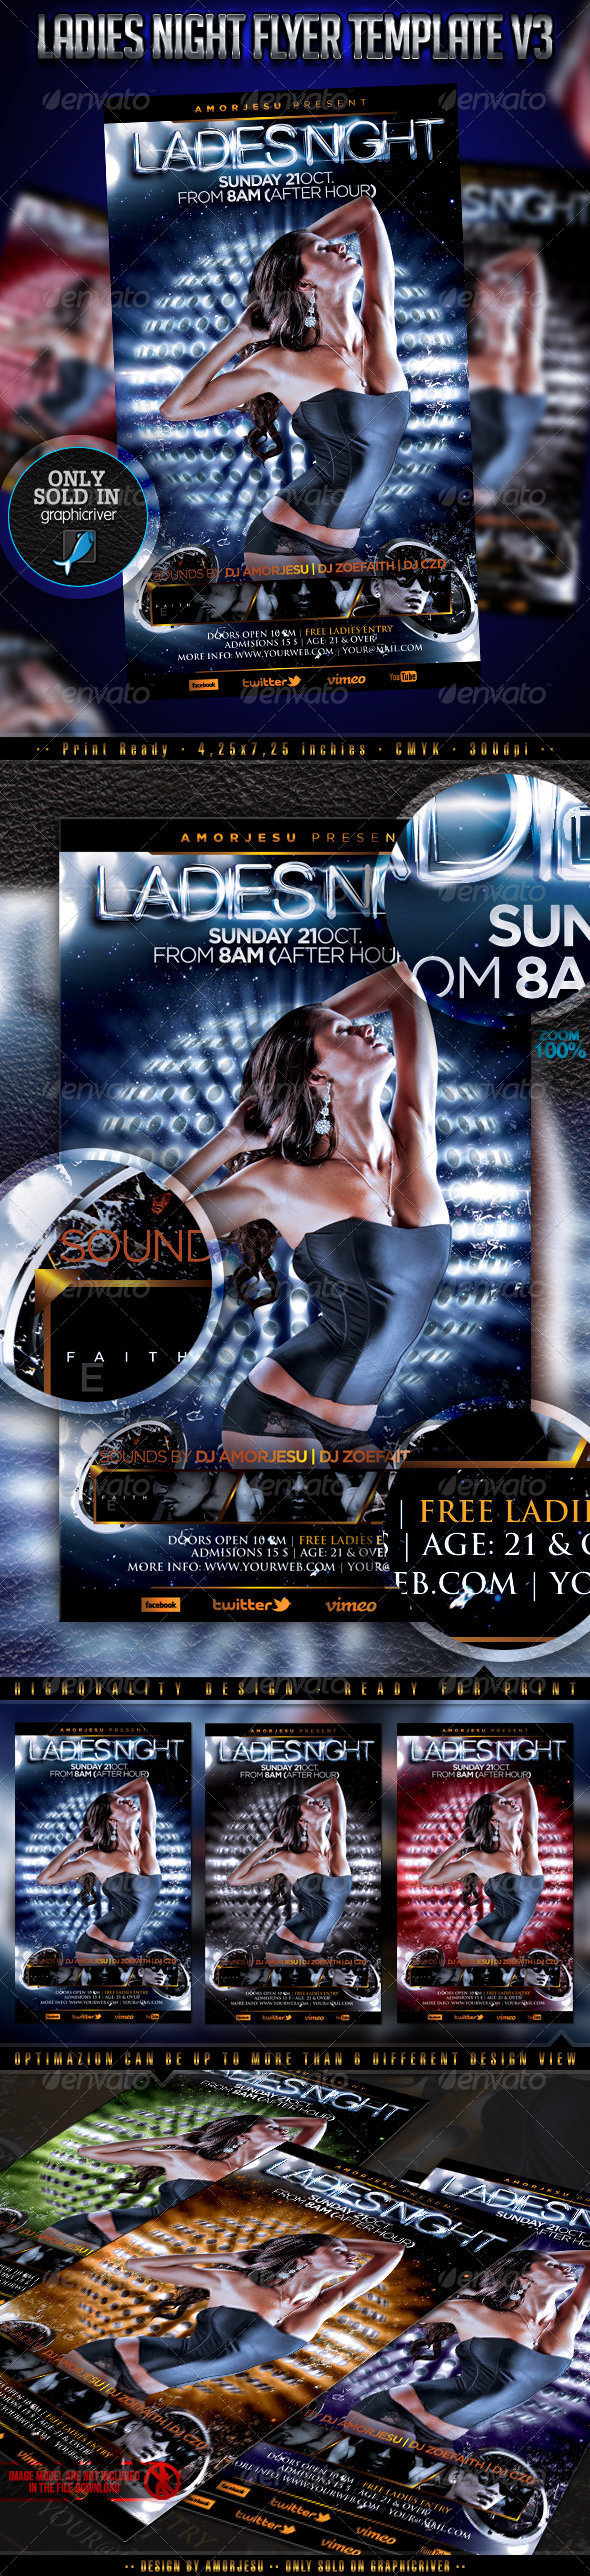 Ladies Night Flyer Template V3 - Events Flyers